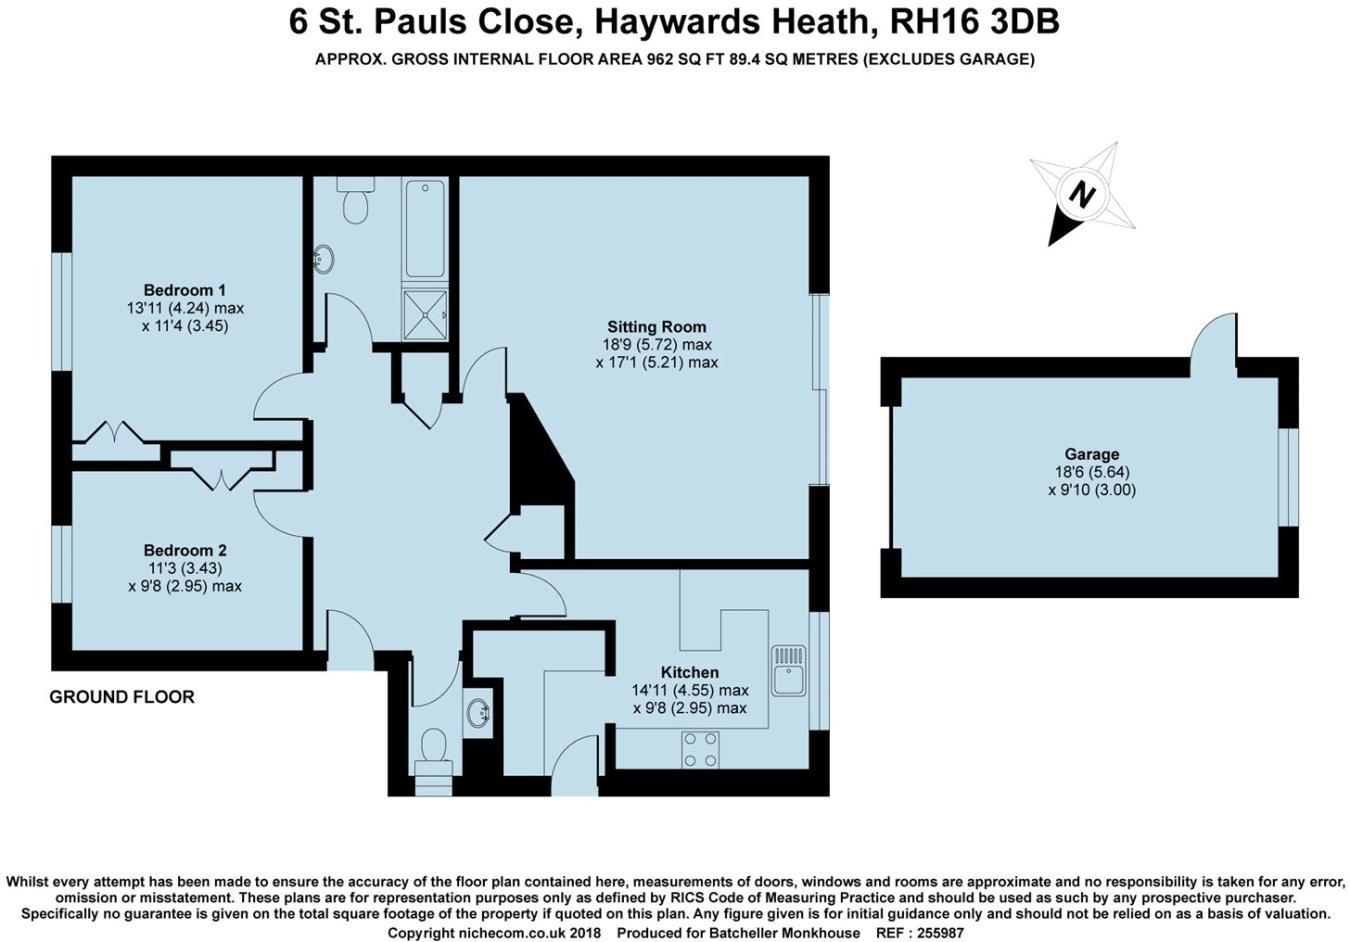 2 bedroom bungalow for sale in St. Pauls Close, Haywards Heath, RH16